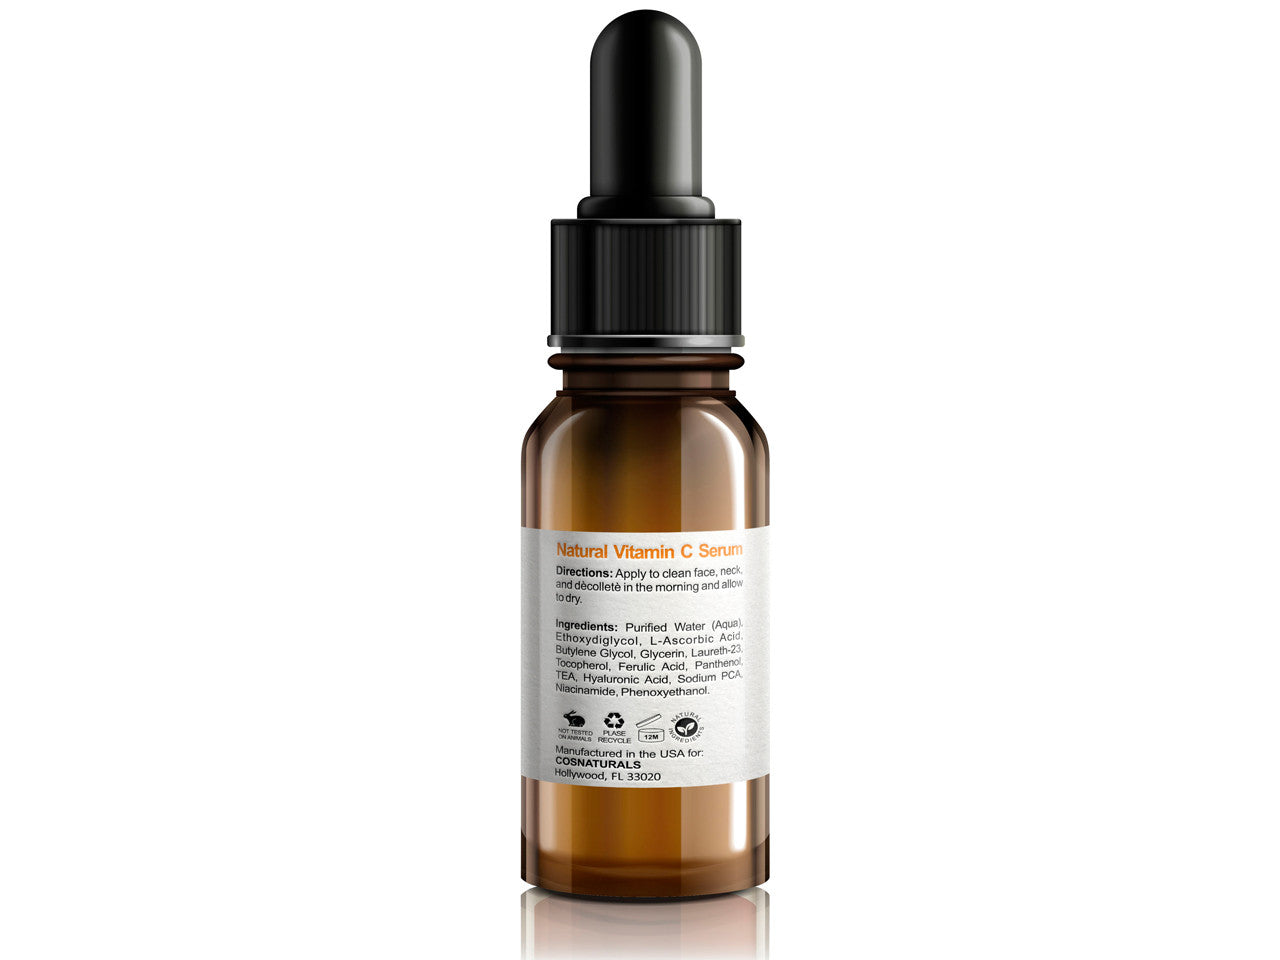 20% Vitamin C Serum with L-Ascorbic Hyaluronic and Ferulic Acid, 1 oz